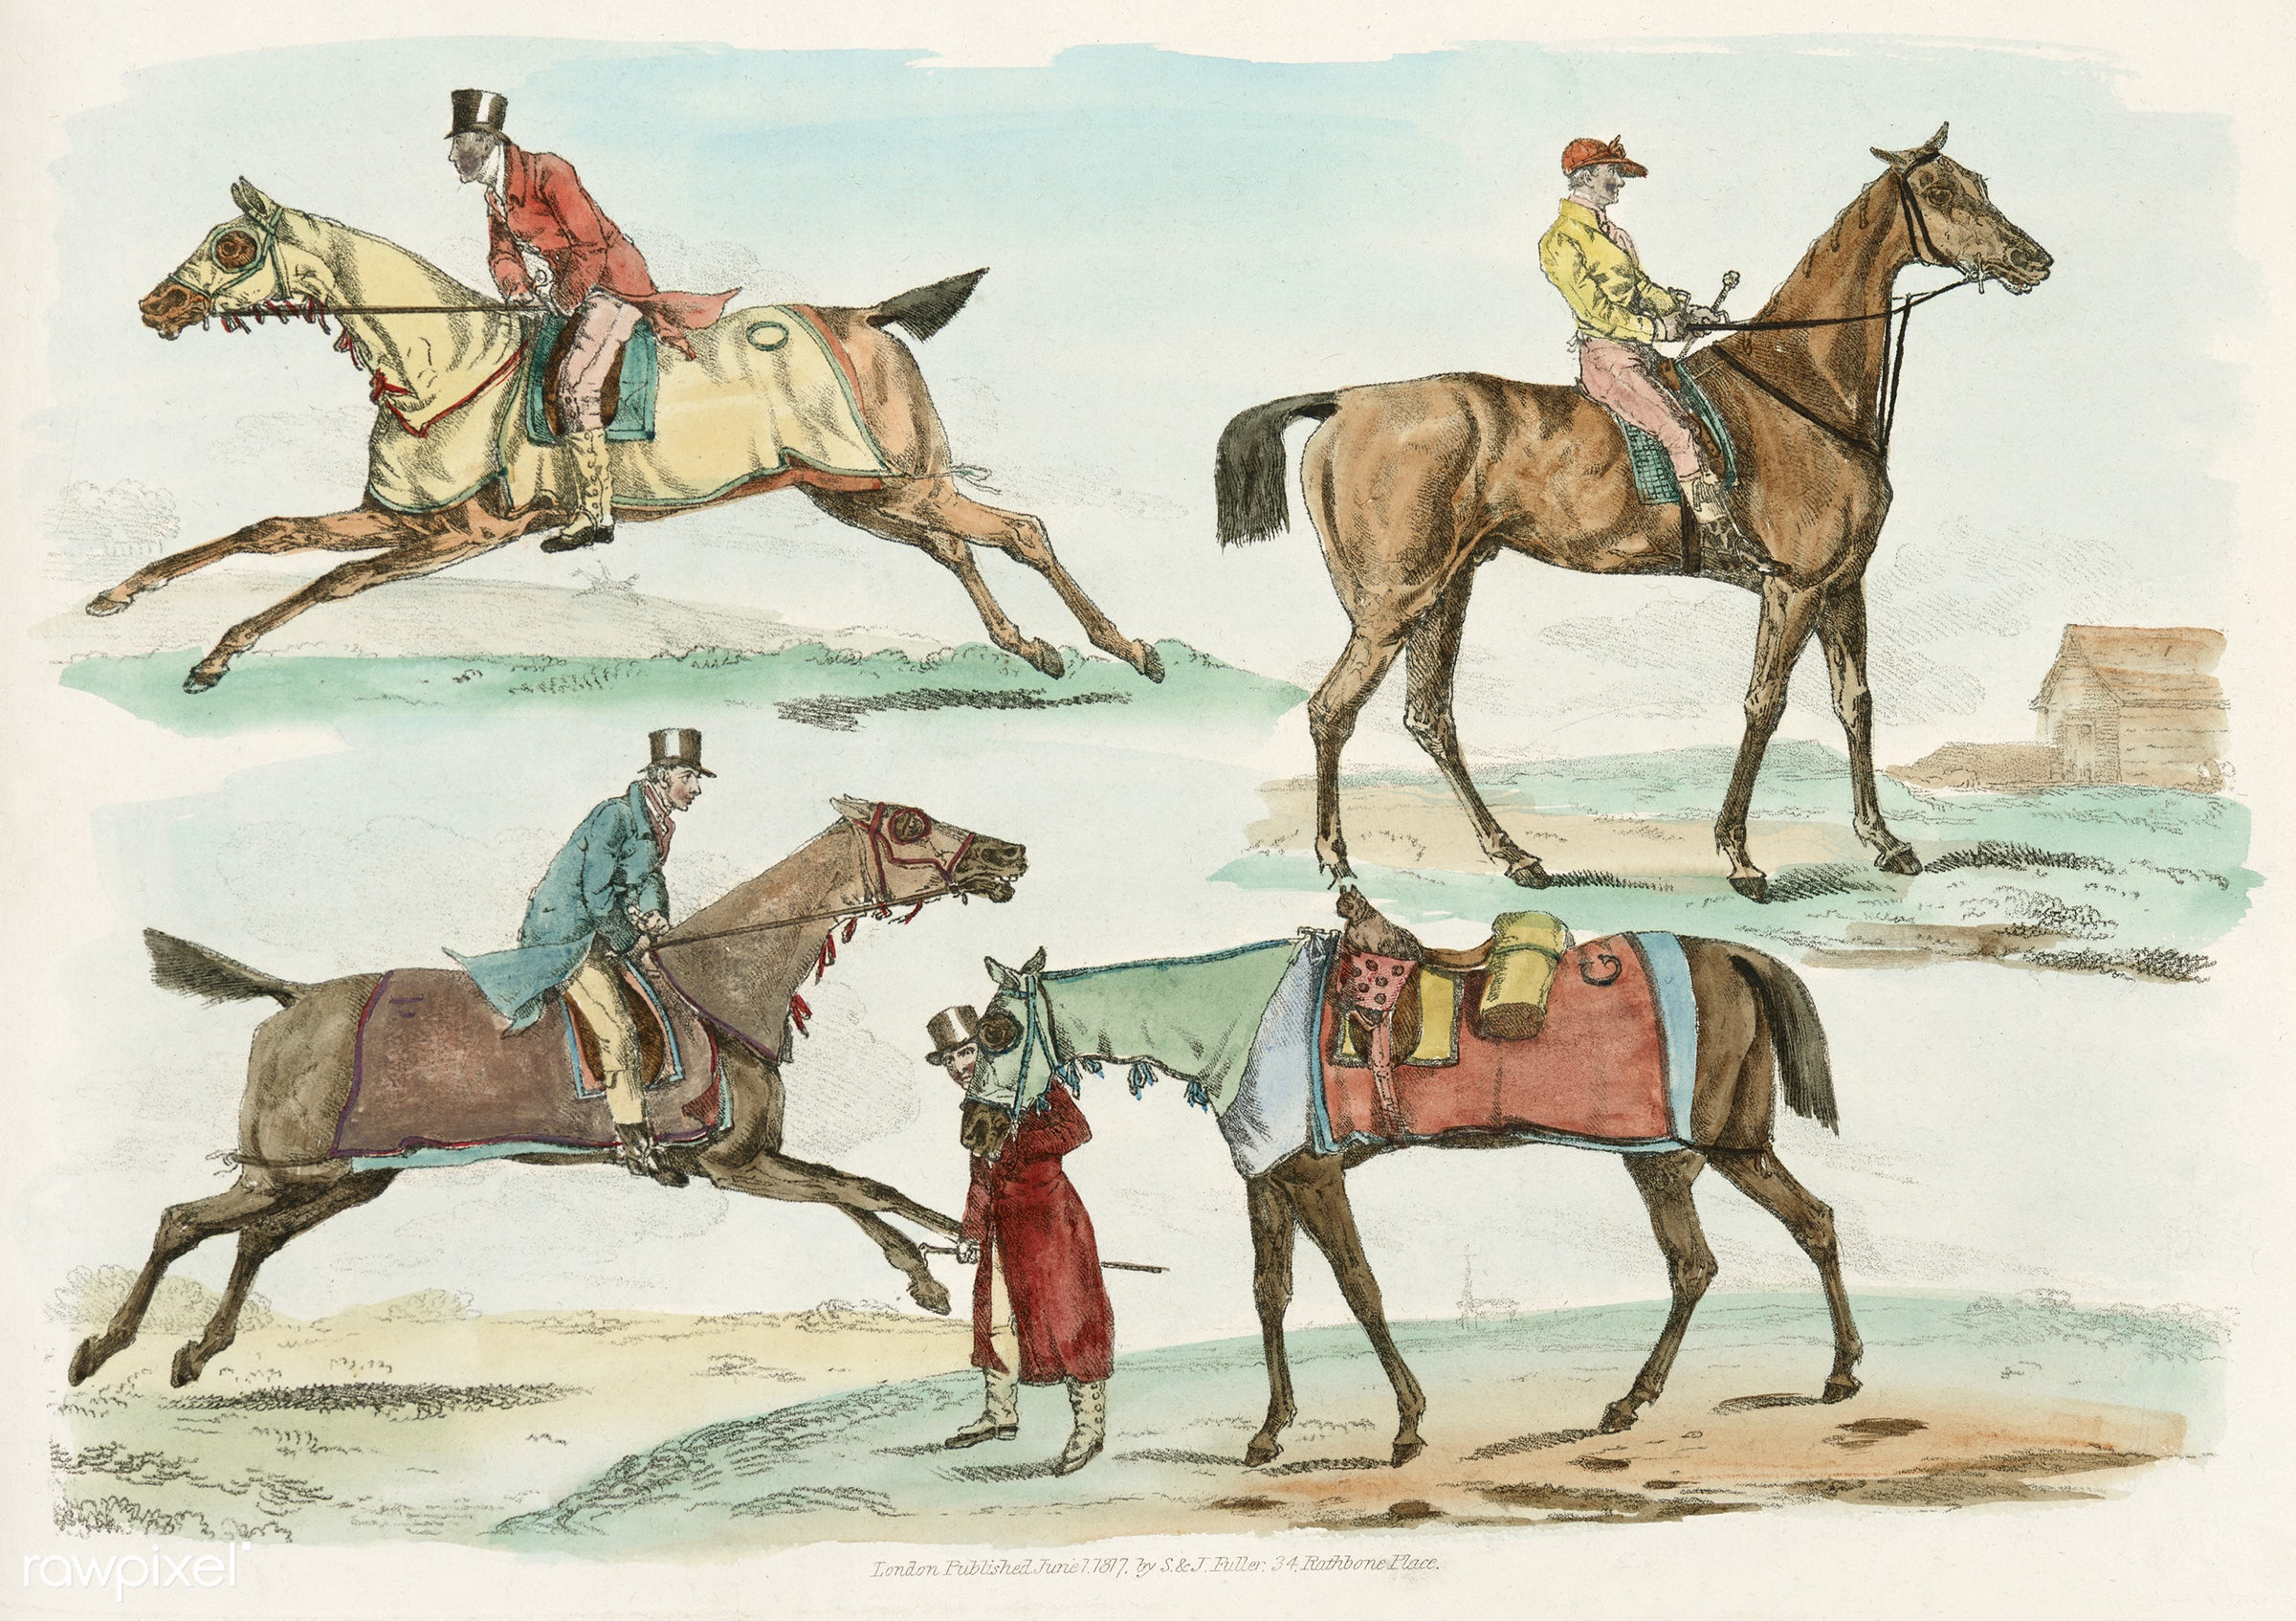 Illustration of hunters training their horses from Sporting Sketches (1817-1818) by Henry Alken (1784-1851). - animal,...